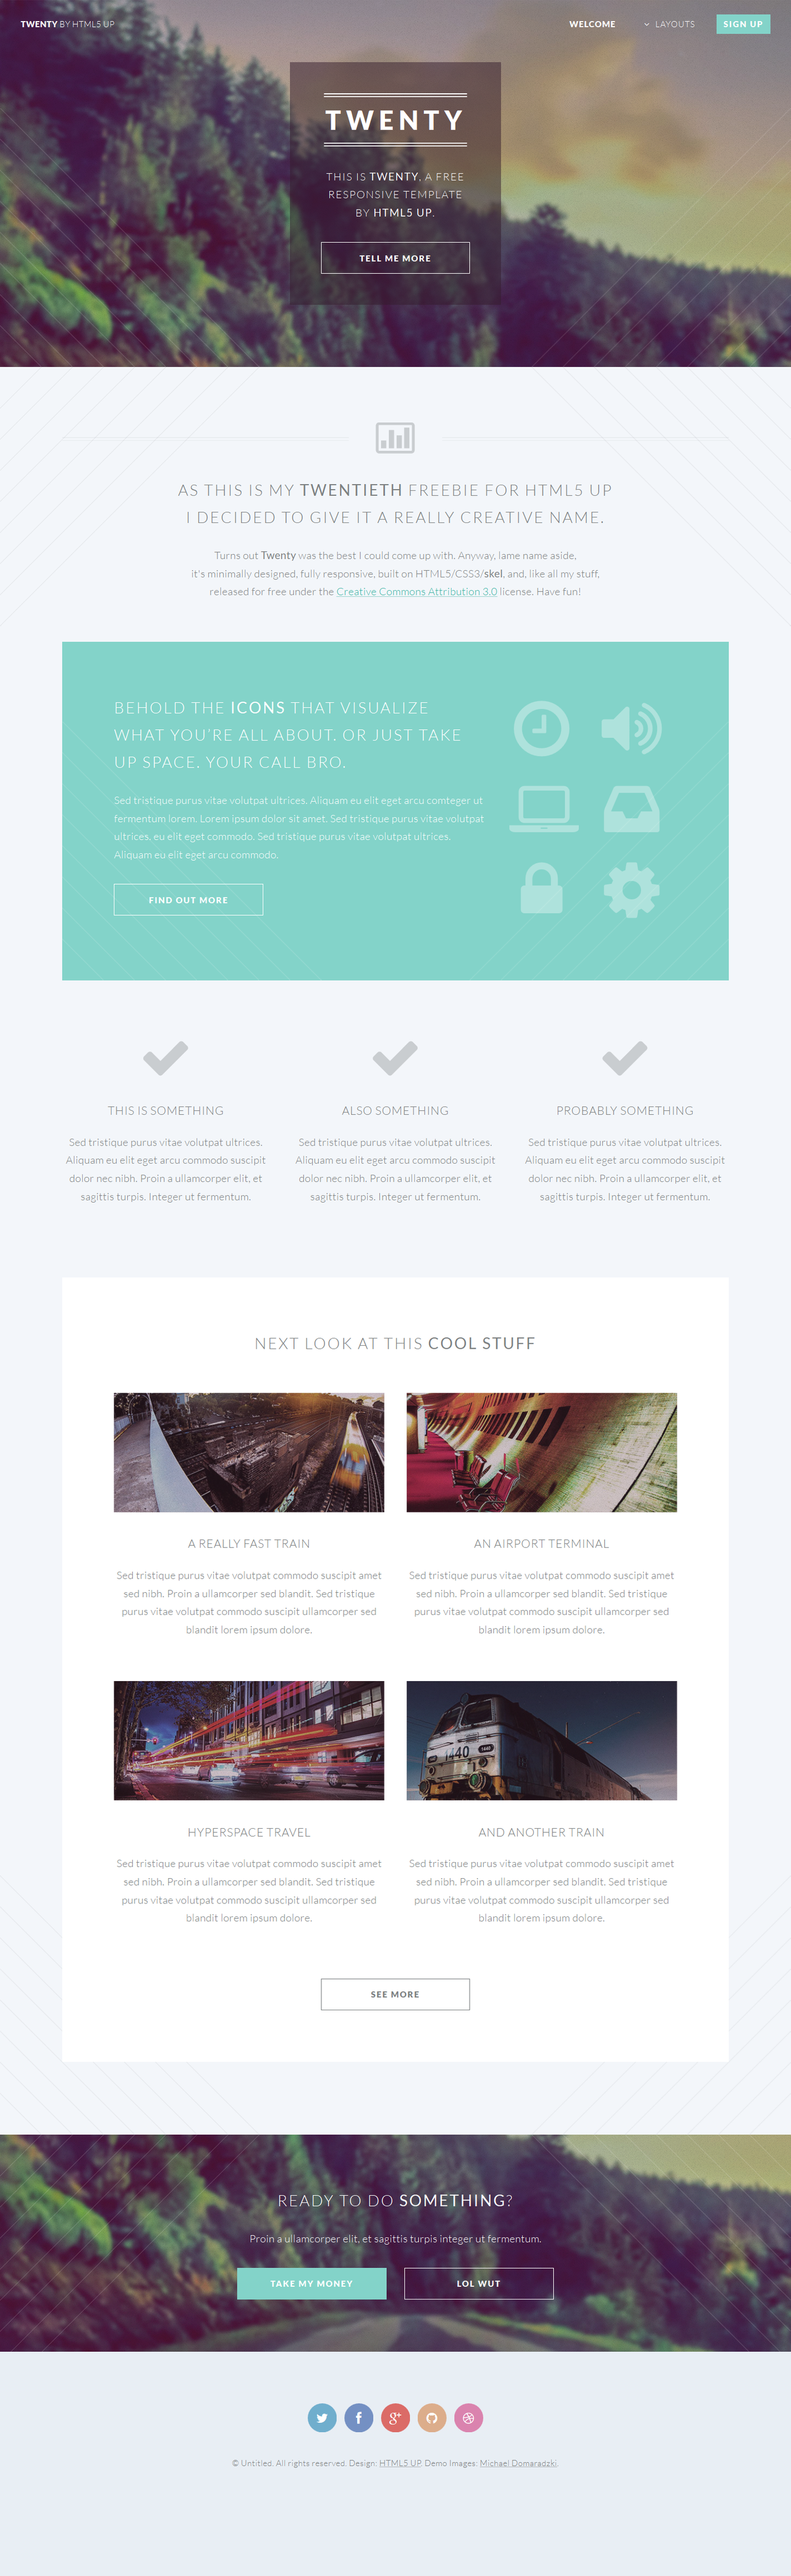 Twenty (responsive site template freebie) by nodethirtythree